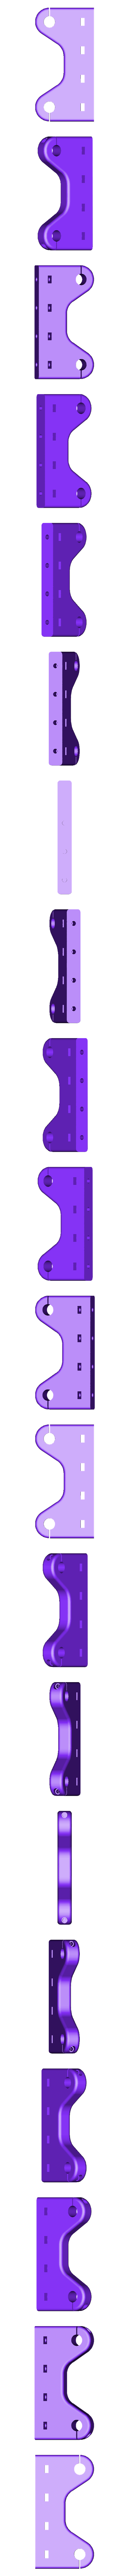 VERTICAL_SUPPORT_X3.stl Download free STL file COLUMN DRILL • Design to 3D print, Pipapelaa